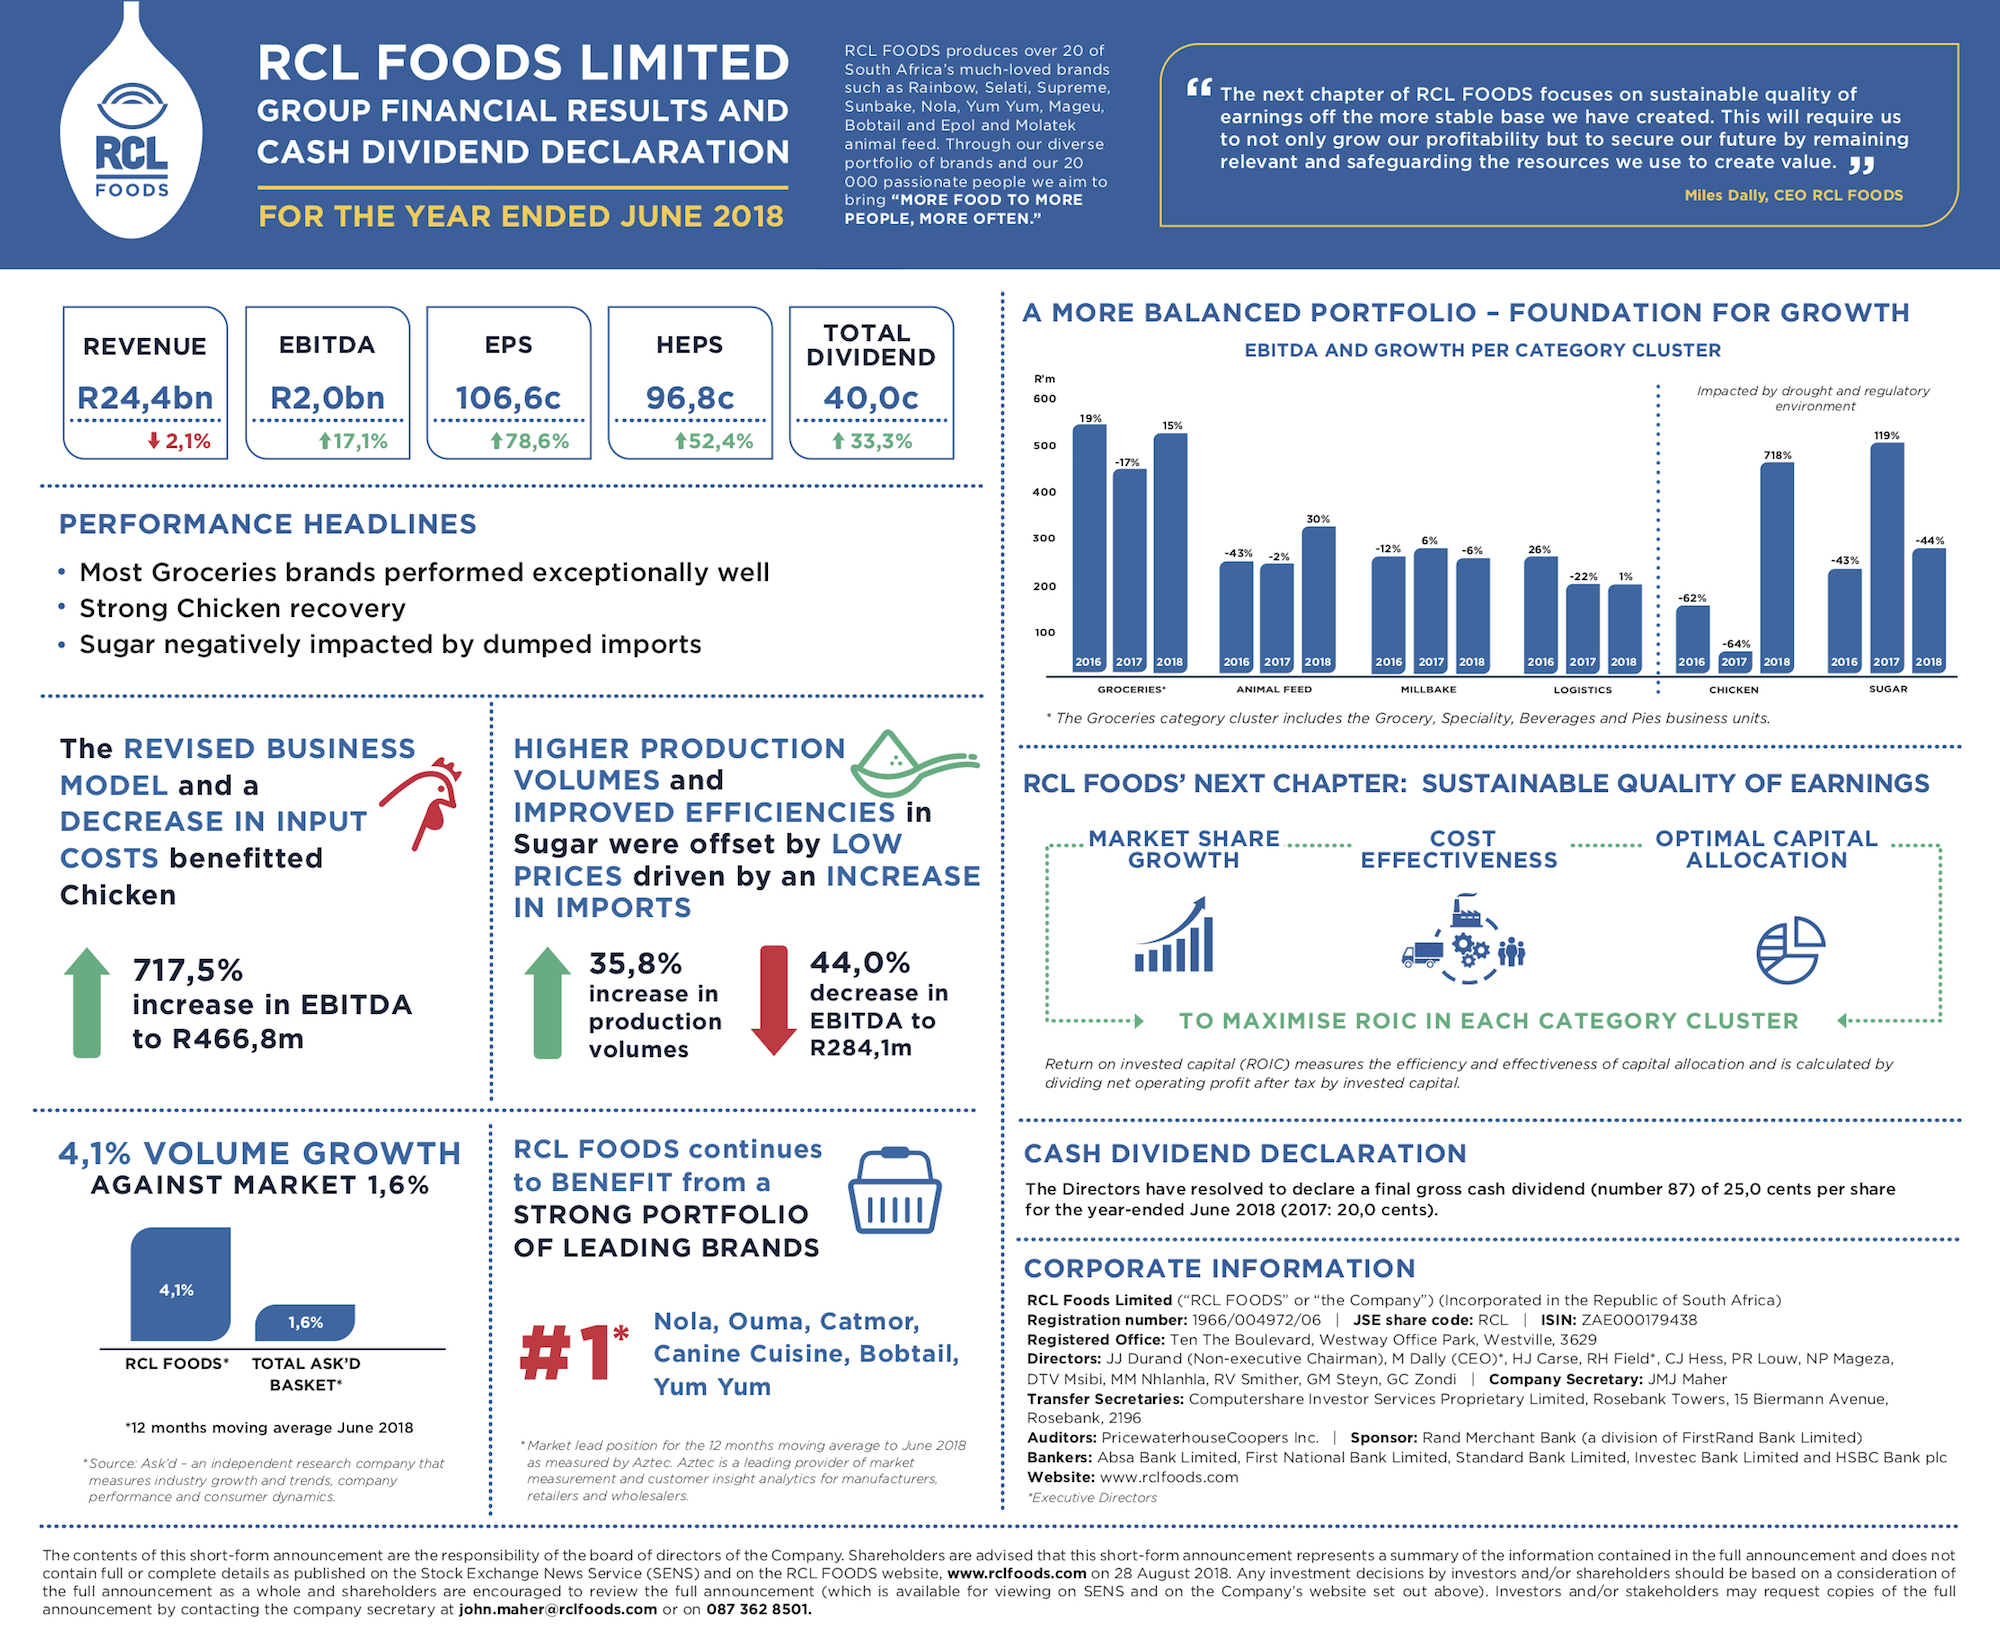 RCL Foods full year 2018